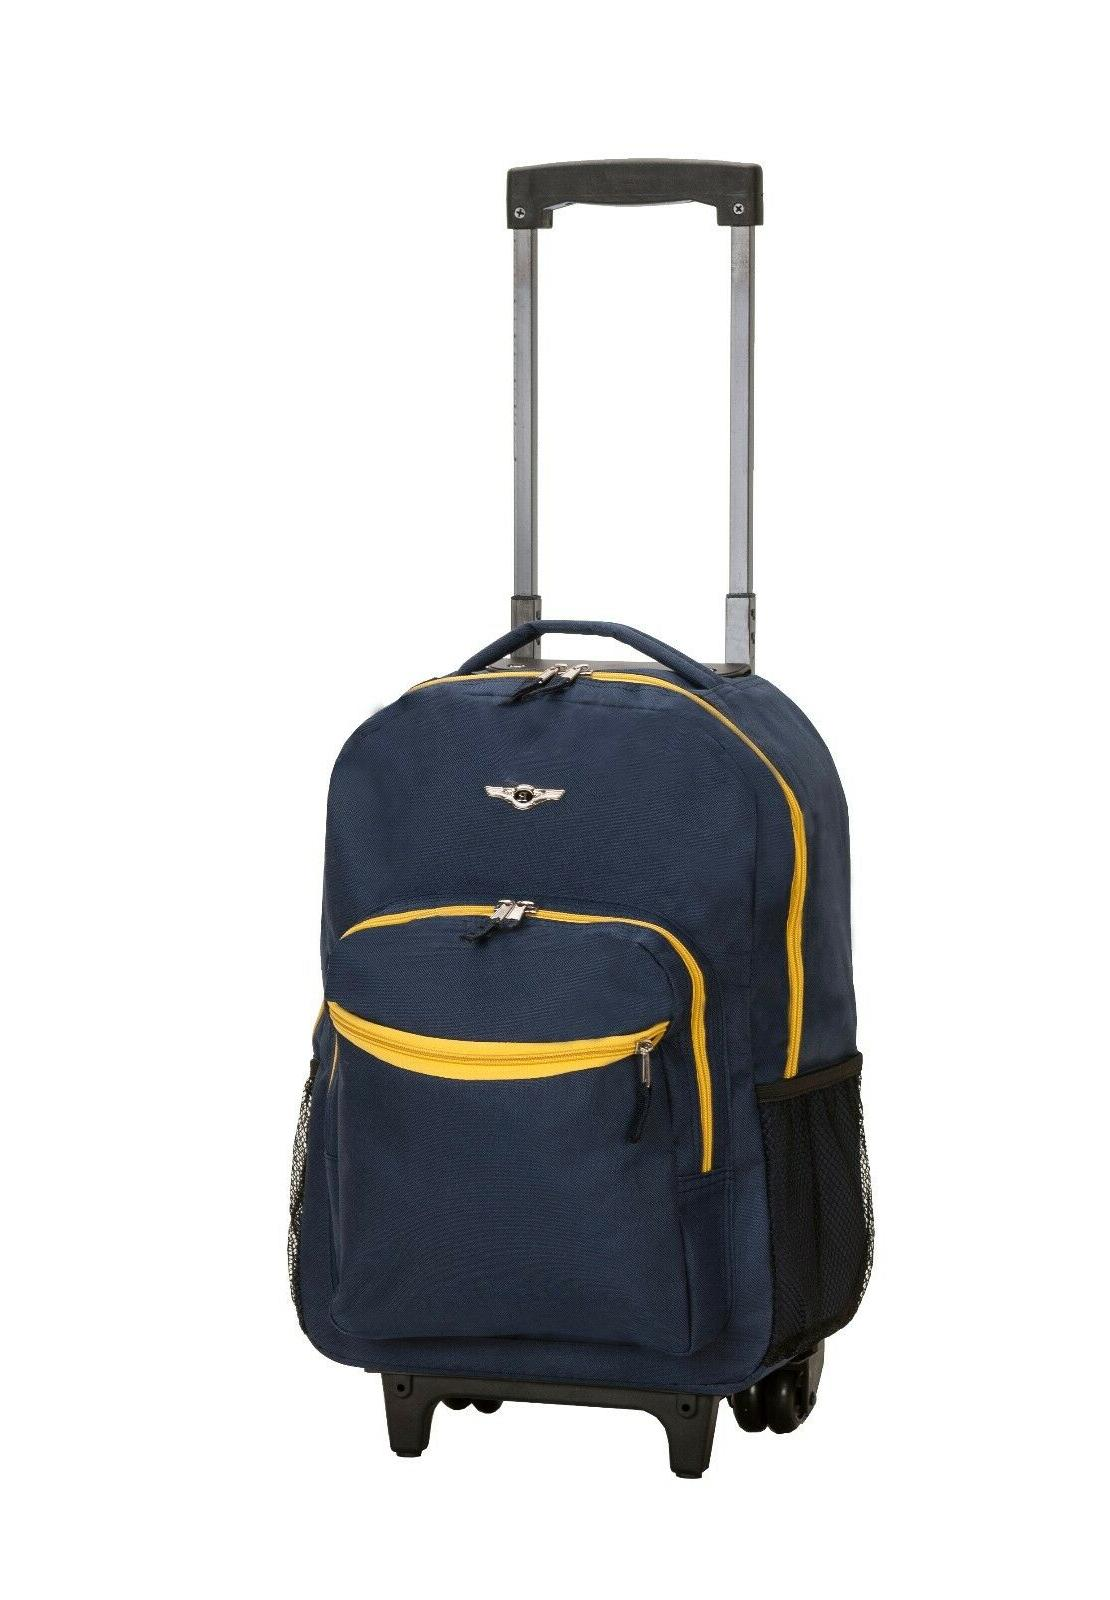 Deluxe Wheel Backpack Luggage Travel